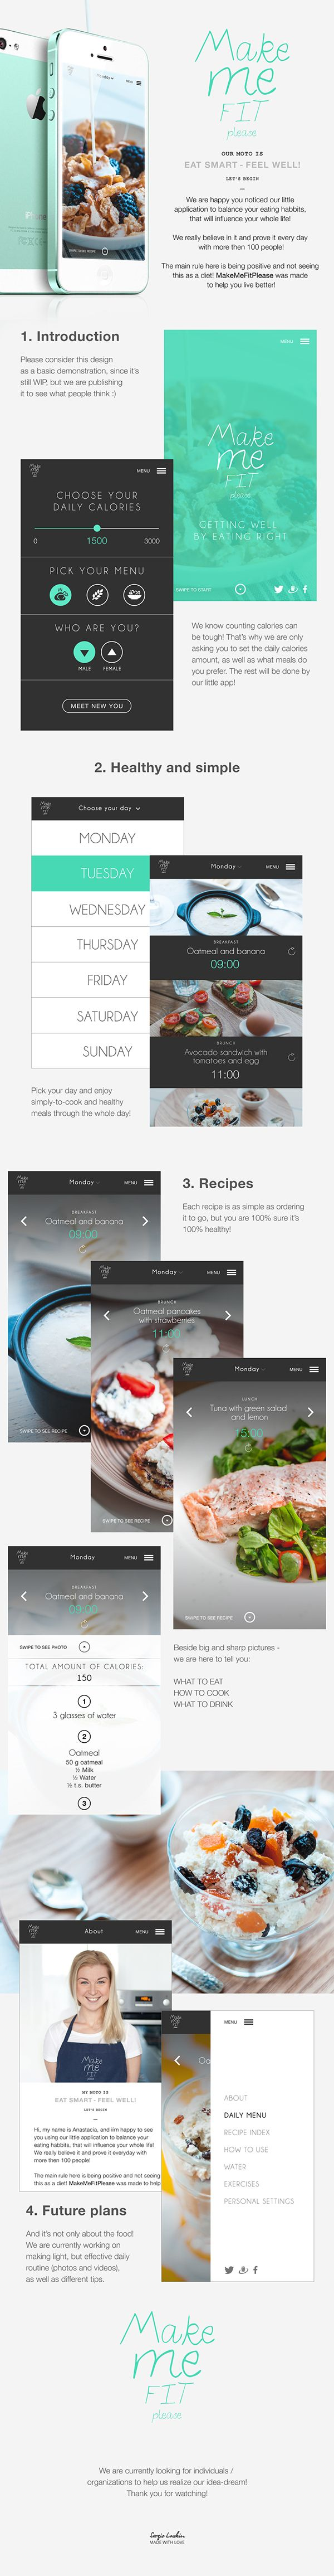 Make Me Fit Please UI/UX by Studio43, via Behance #app #mobile #food #health #ux #ui #design